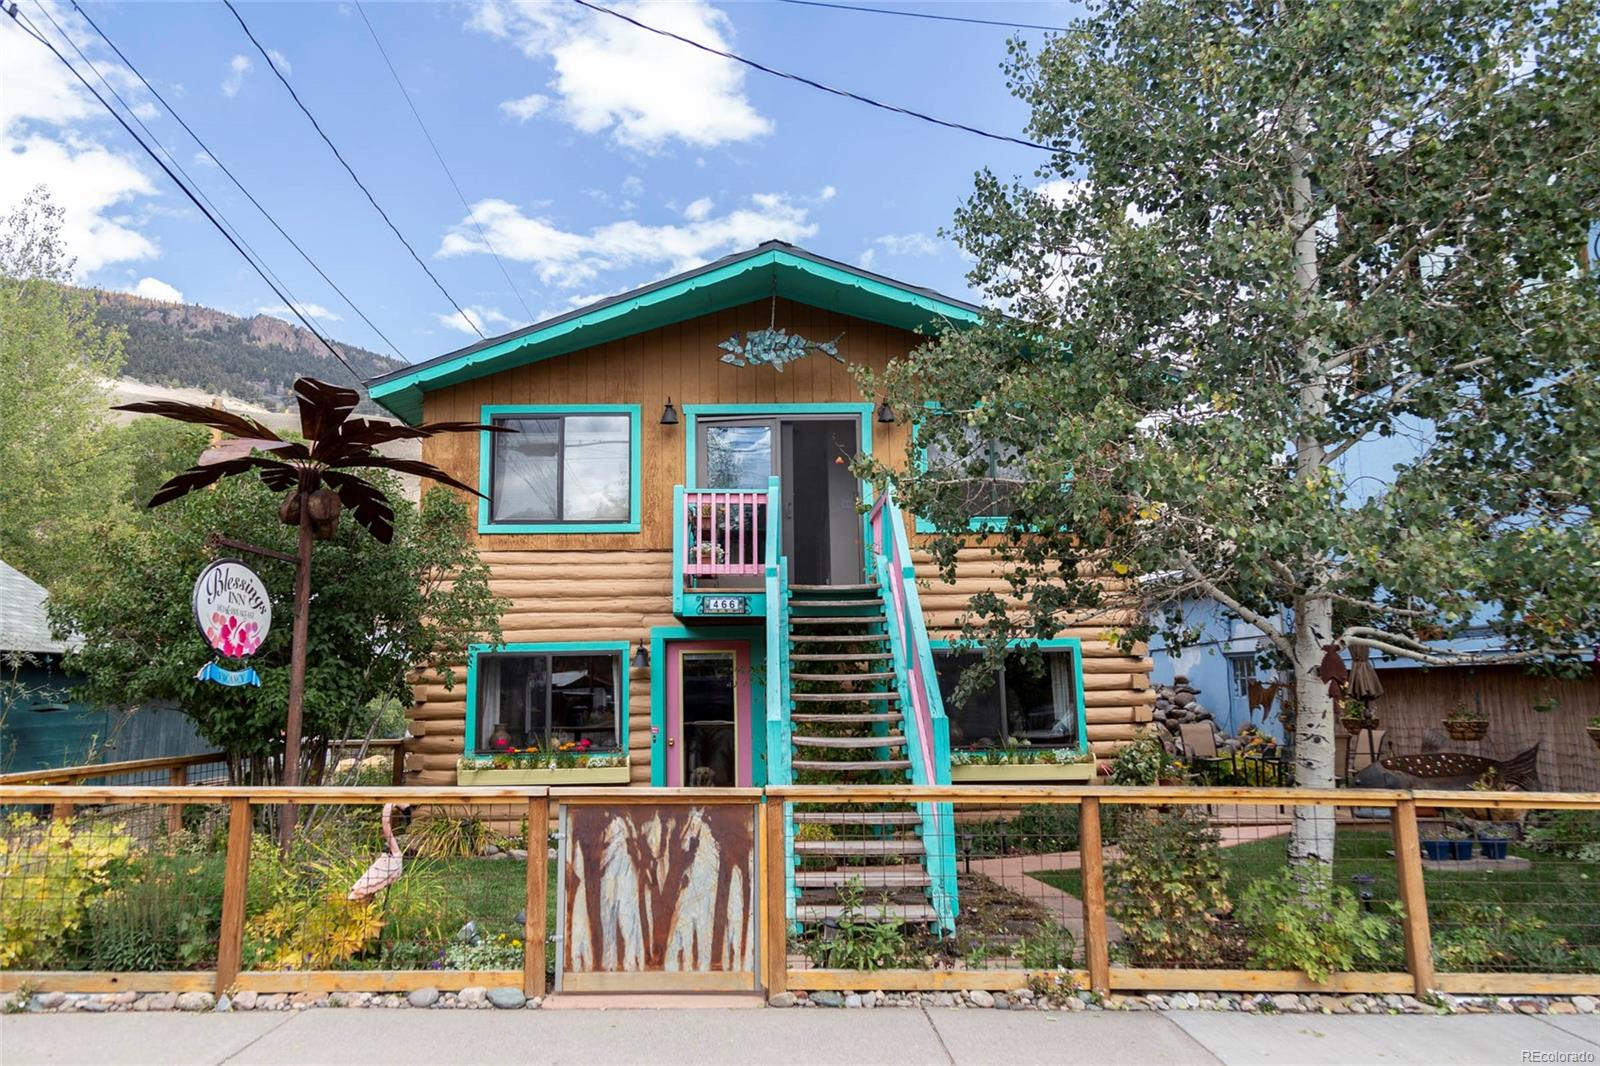 466 S Main Street, Creede, CO 81130 - Creede, CO real estate listing